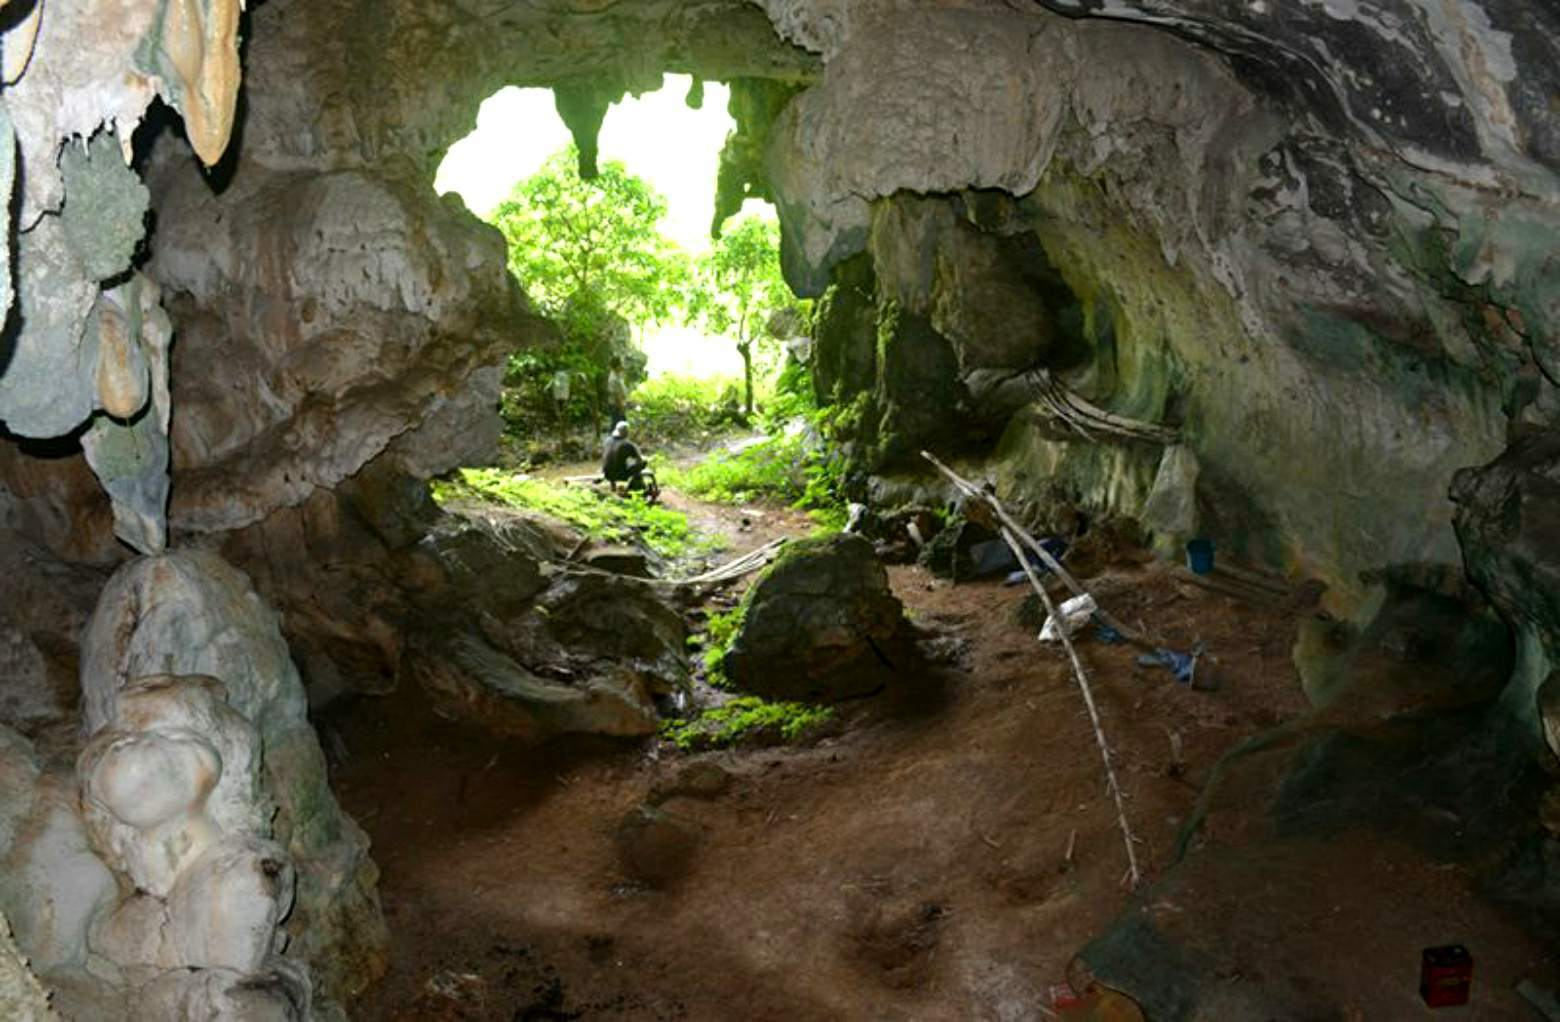 Leang Tedongnge cave on the island of Célebe in Indonesia